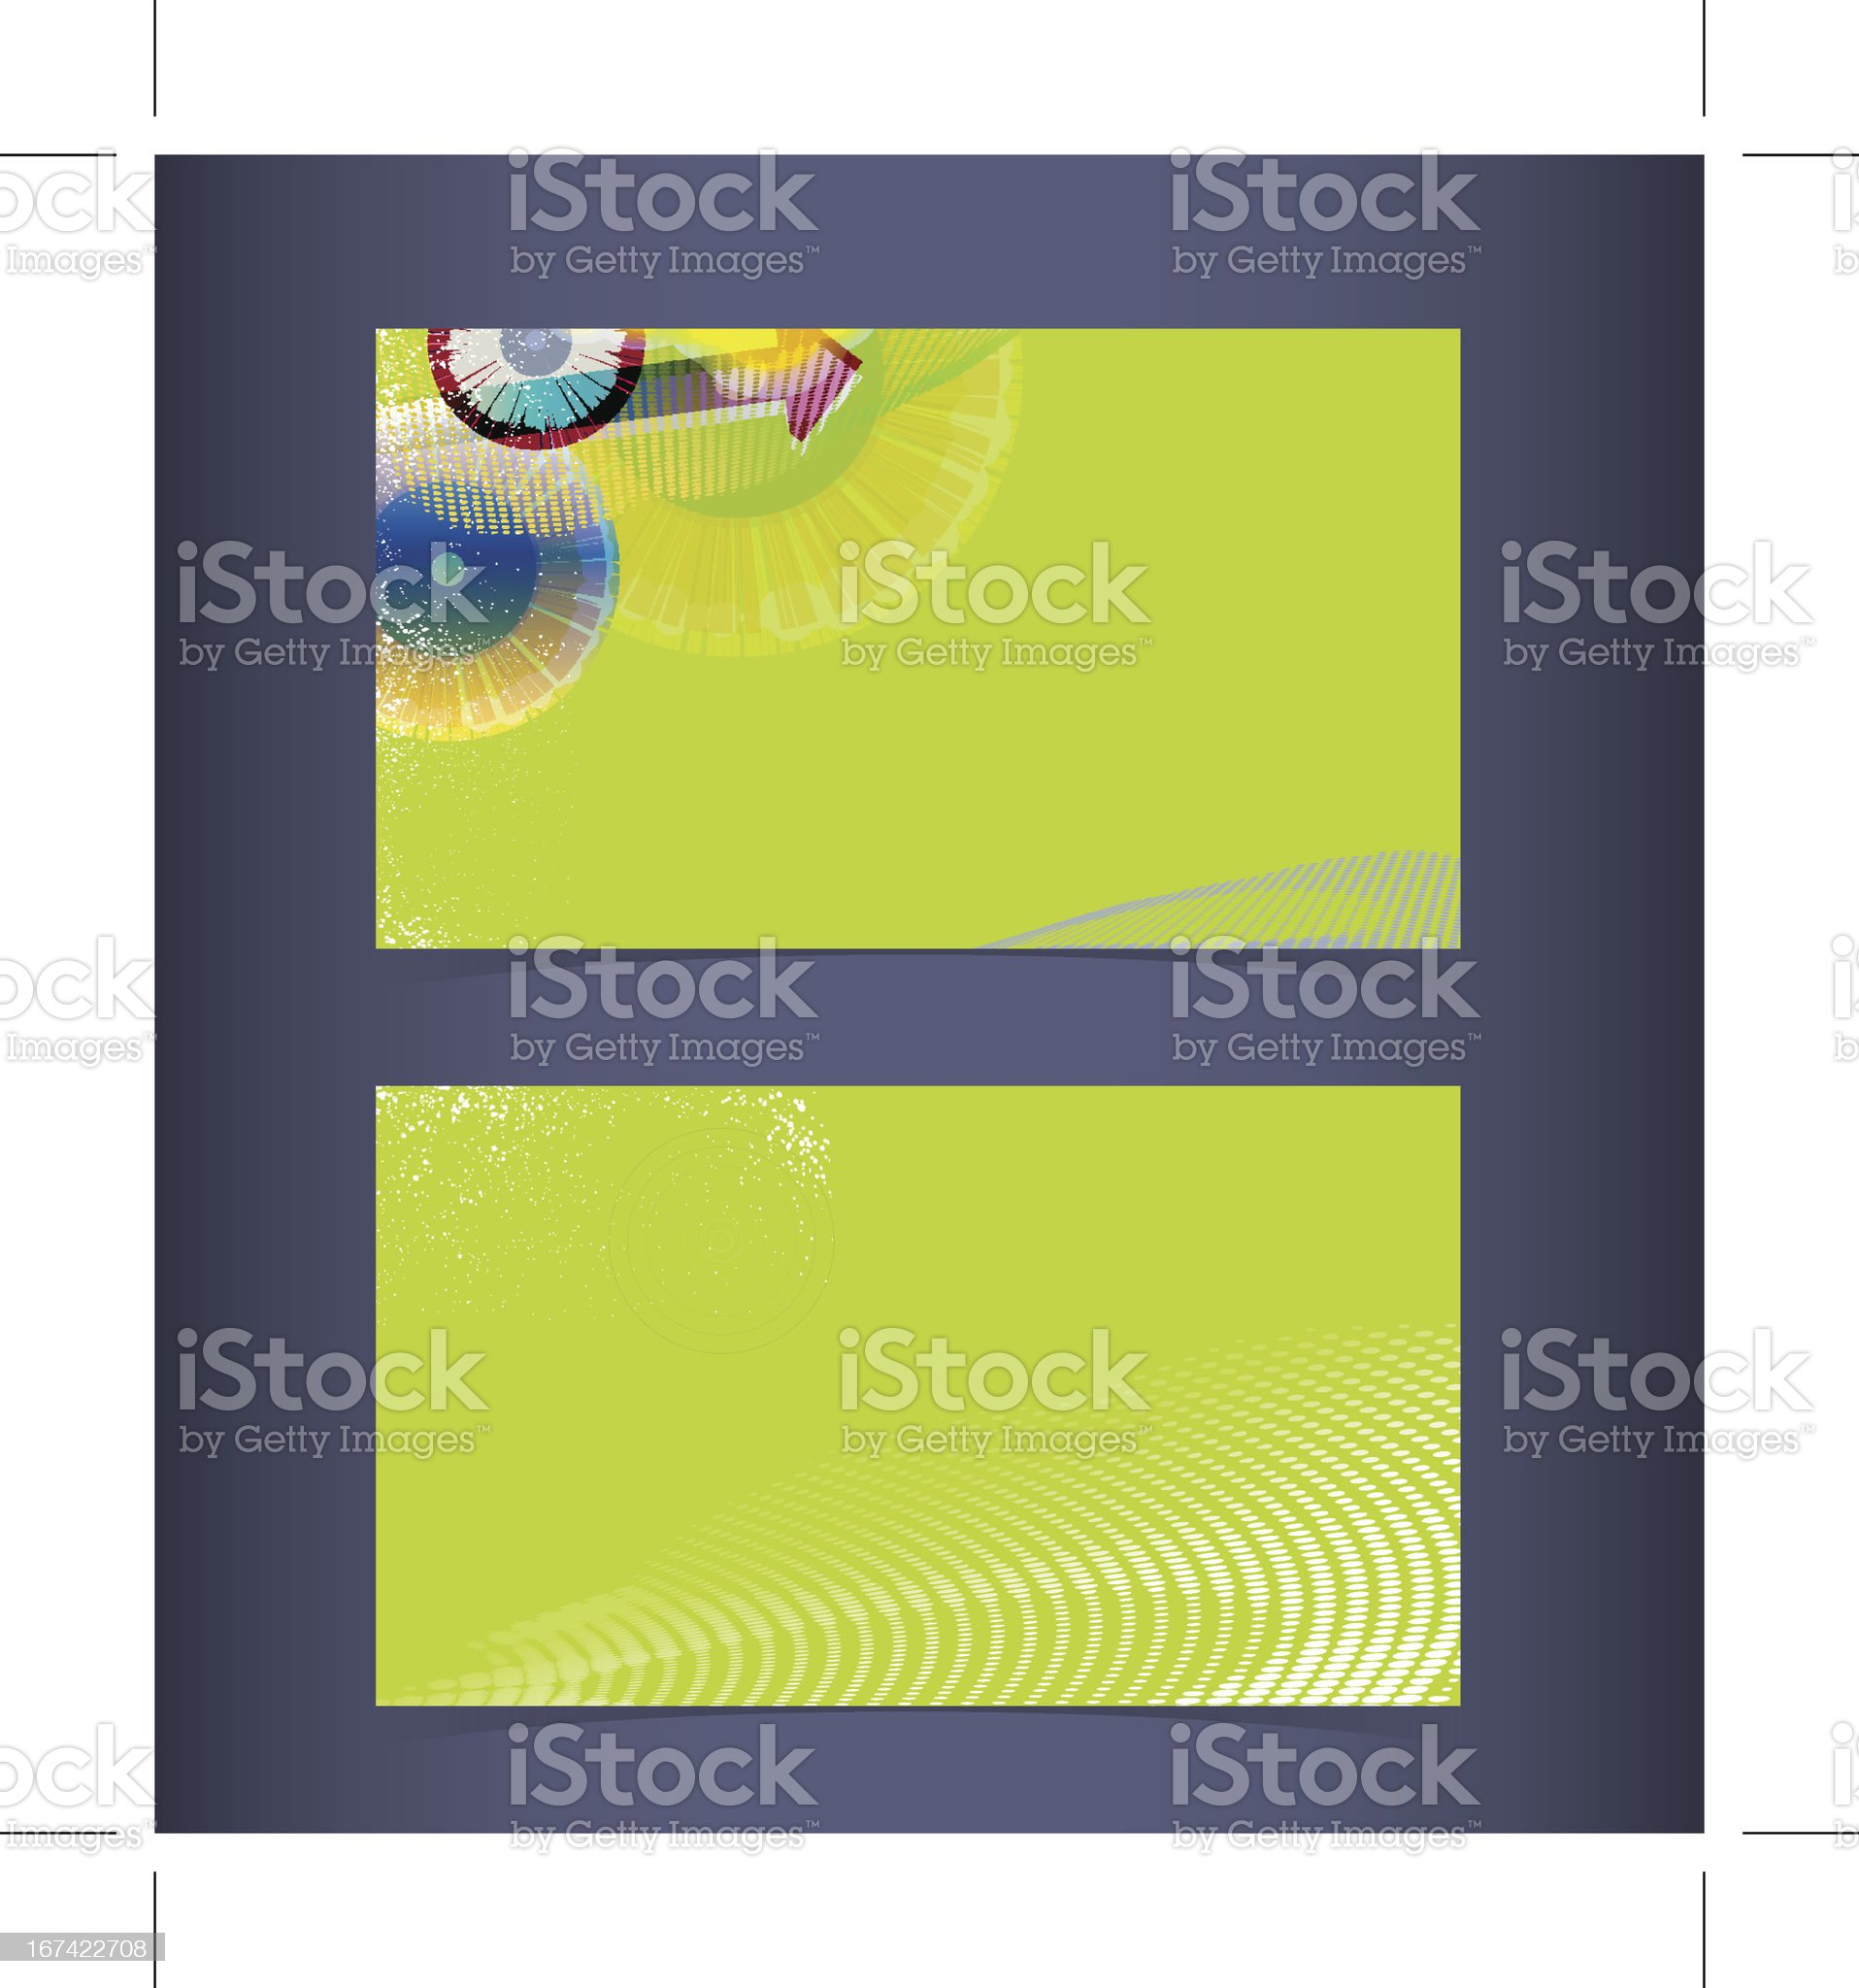 Business card layout. Editable design template royalty-free stock vector art